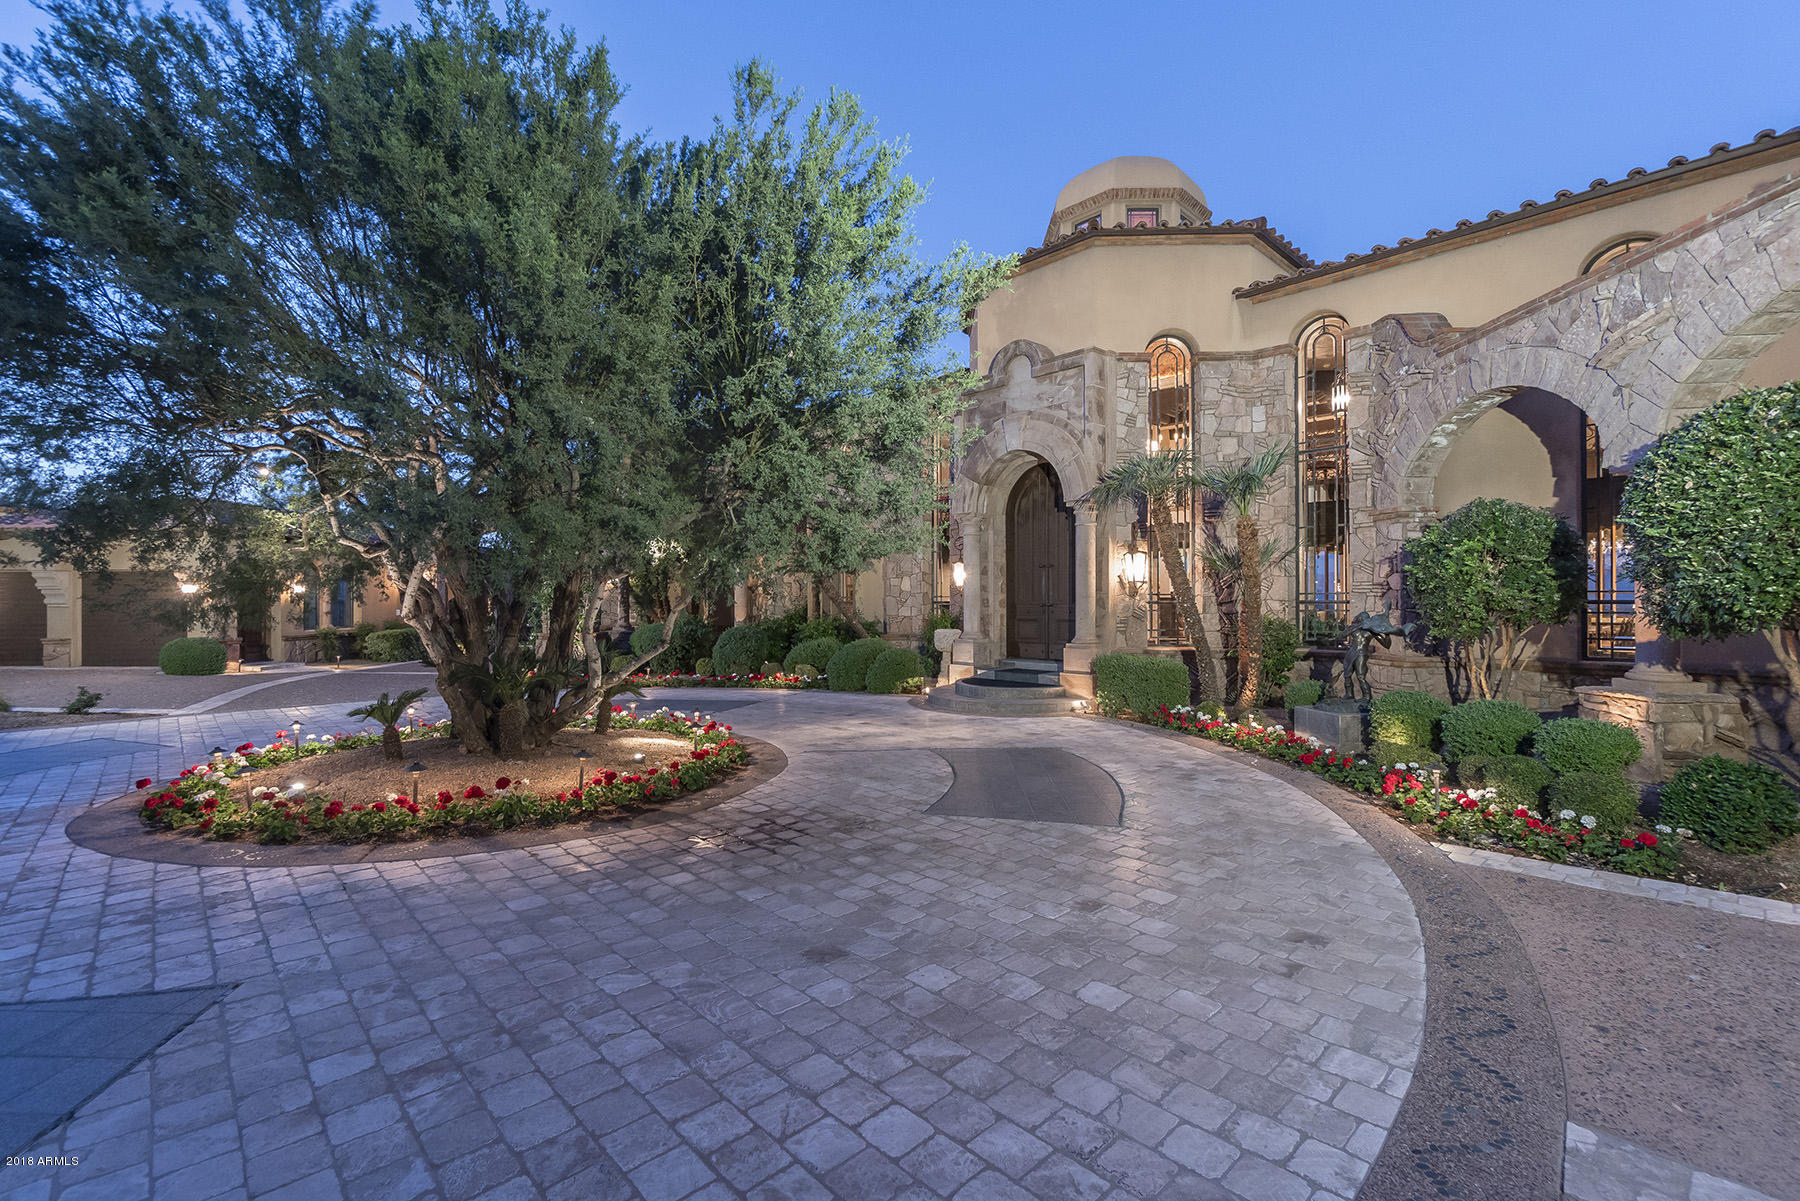 5612 N Yucca Road: A Luxury Home For Sale In Paradise Valley, Maricopa  County , Arizona   Property ID:5846139 | Christieu0027s International Real  Estate